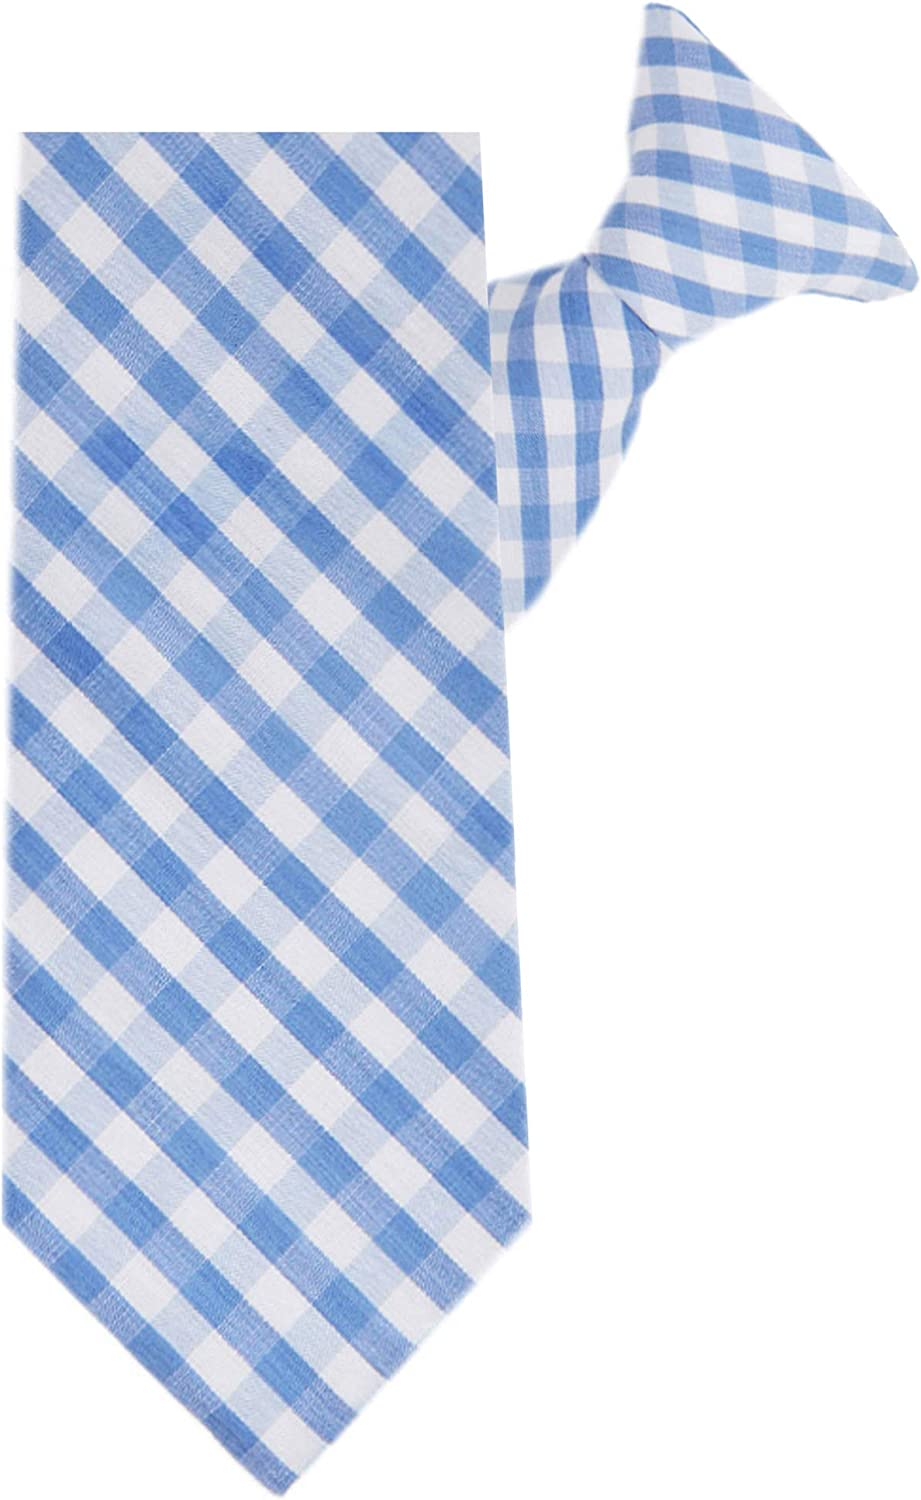 Jacob Alexander Boys' 14 inch Clip-On Gingham Checkered Pattern Neck Tie